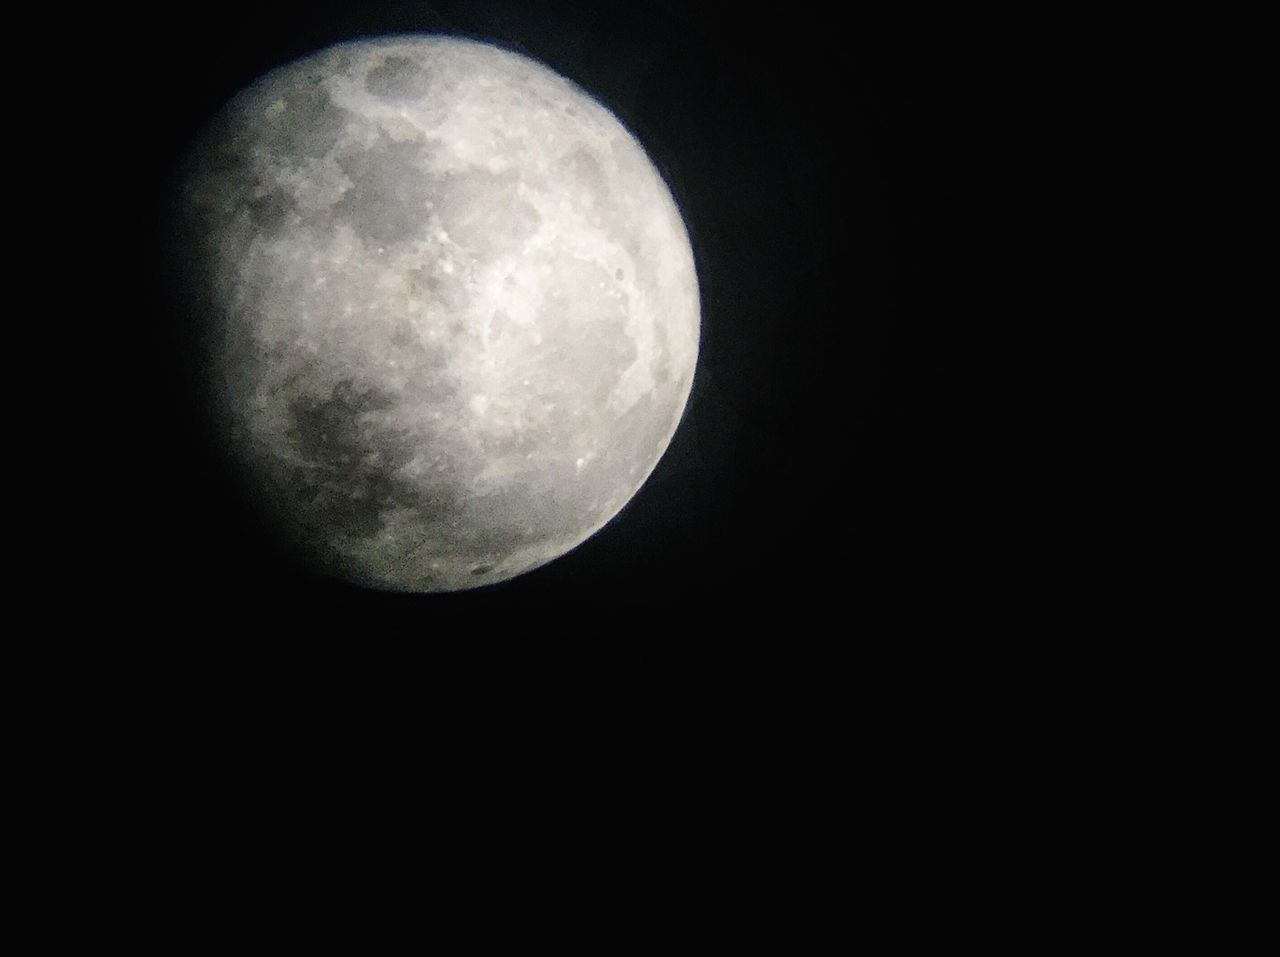 Moon Full Moon Night Astronomy No People Nature Moon Surface Clear Sky Outdoors Black Background Planetary Moon Sky Beauty In Nature Space Supermoon2016